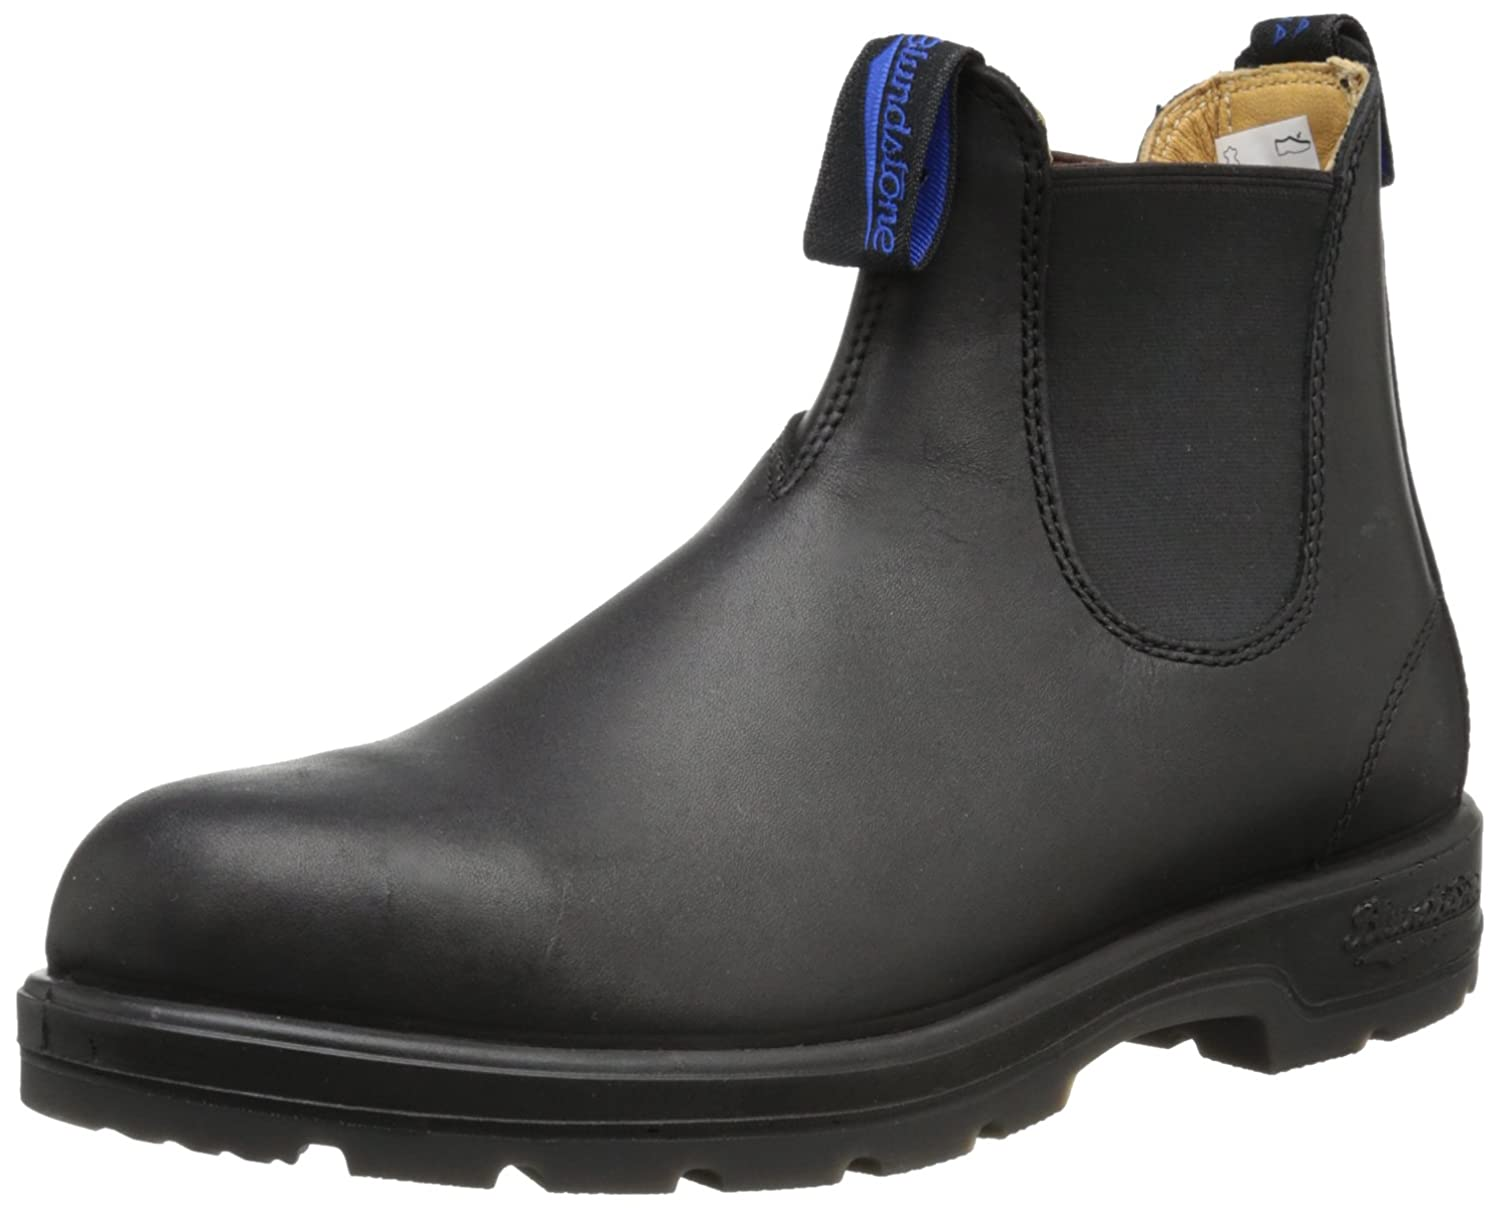 Image of Blundstone Thermal Series Equestrian Sport Boots